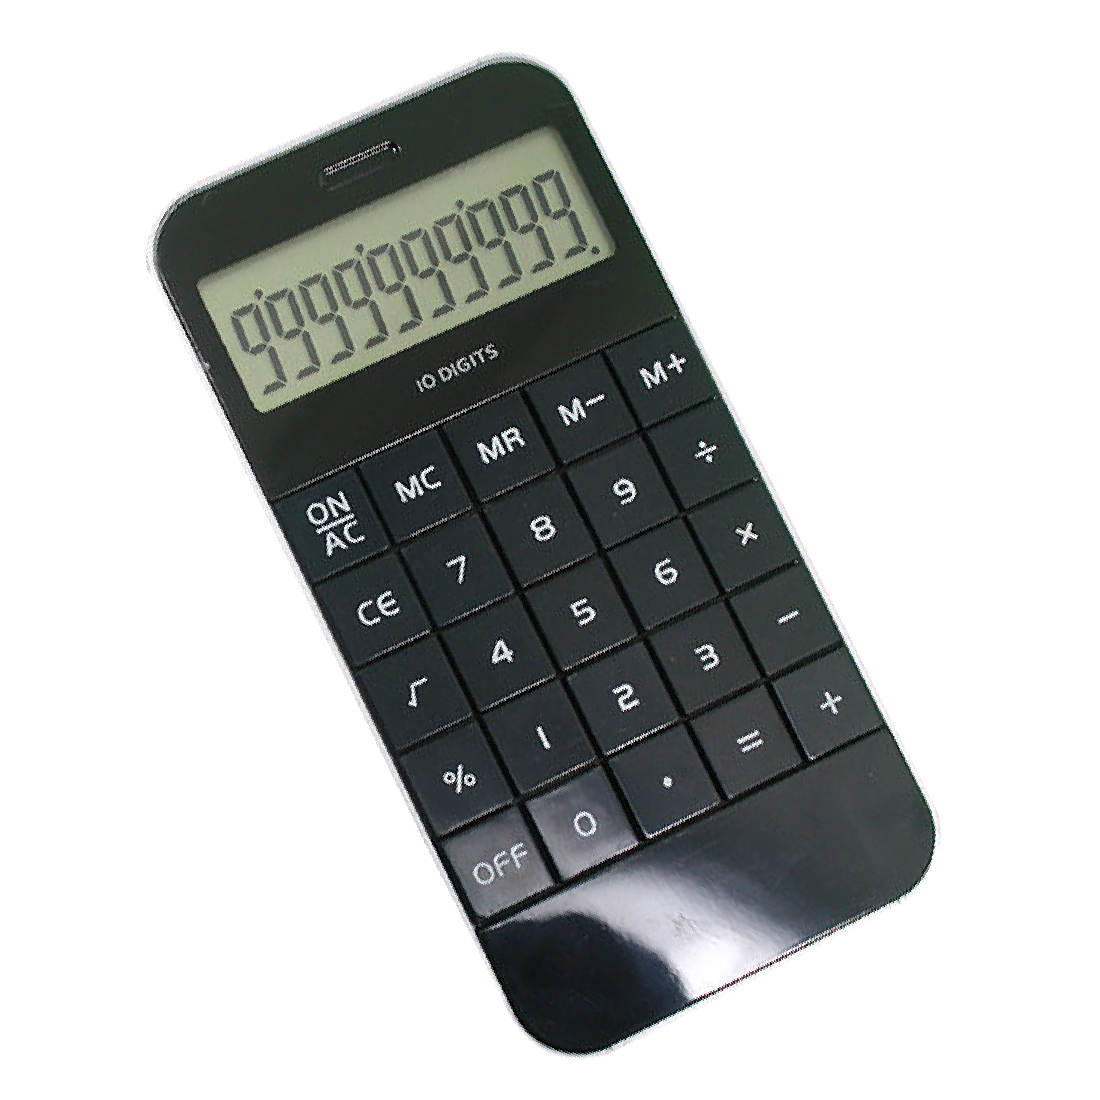 цена NOYOKERE Hot Office Home Portable Calculator Office worker School Calculator Portable Pocket Electronic Calculating Calculator